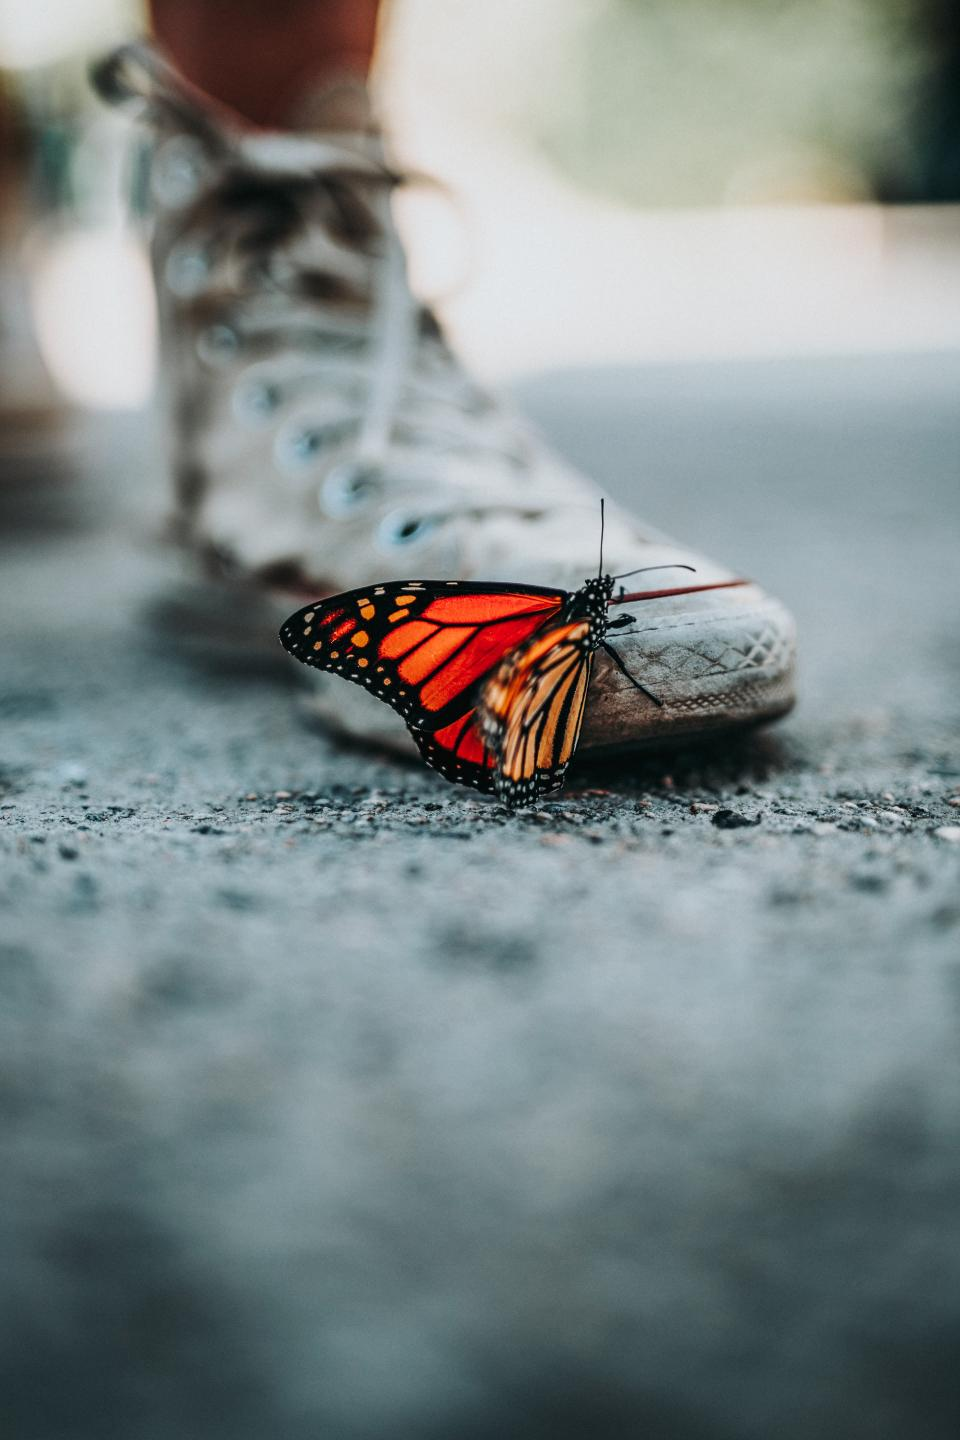 butterfly, insect, animal, street, blur, shoe, sneakers